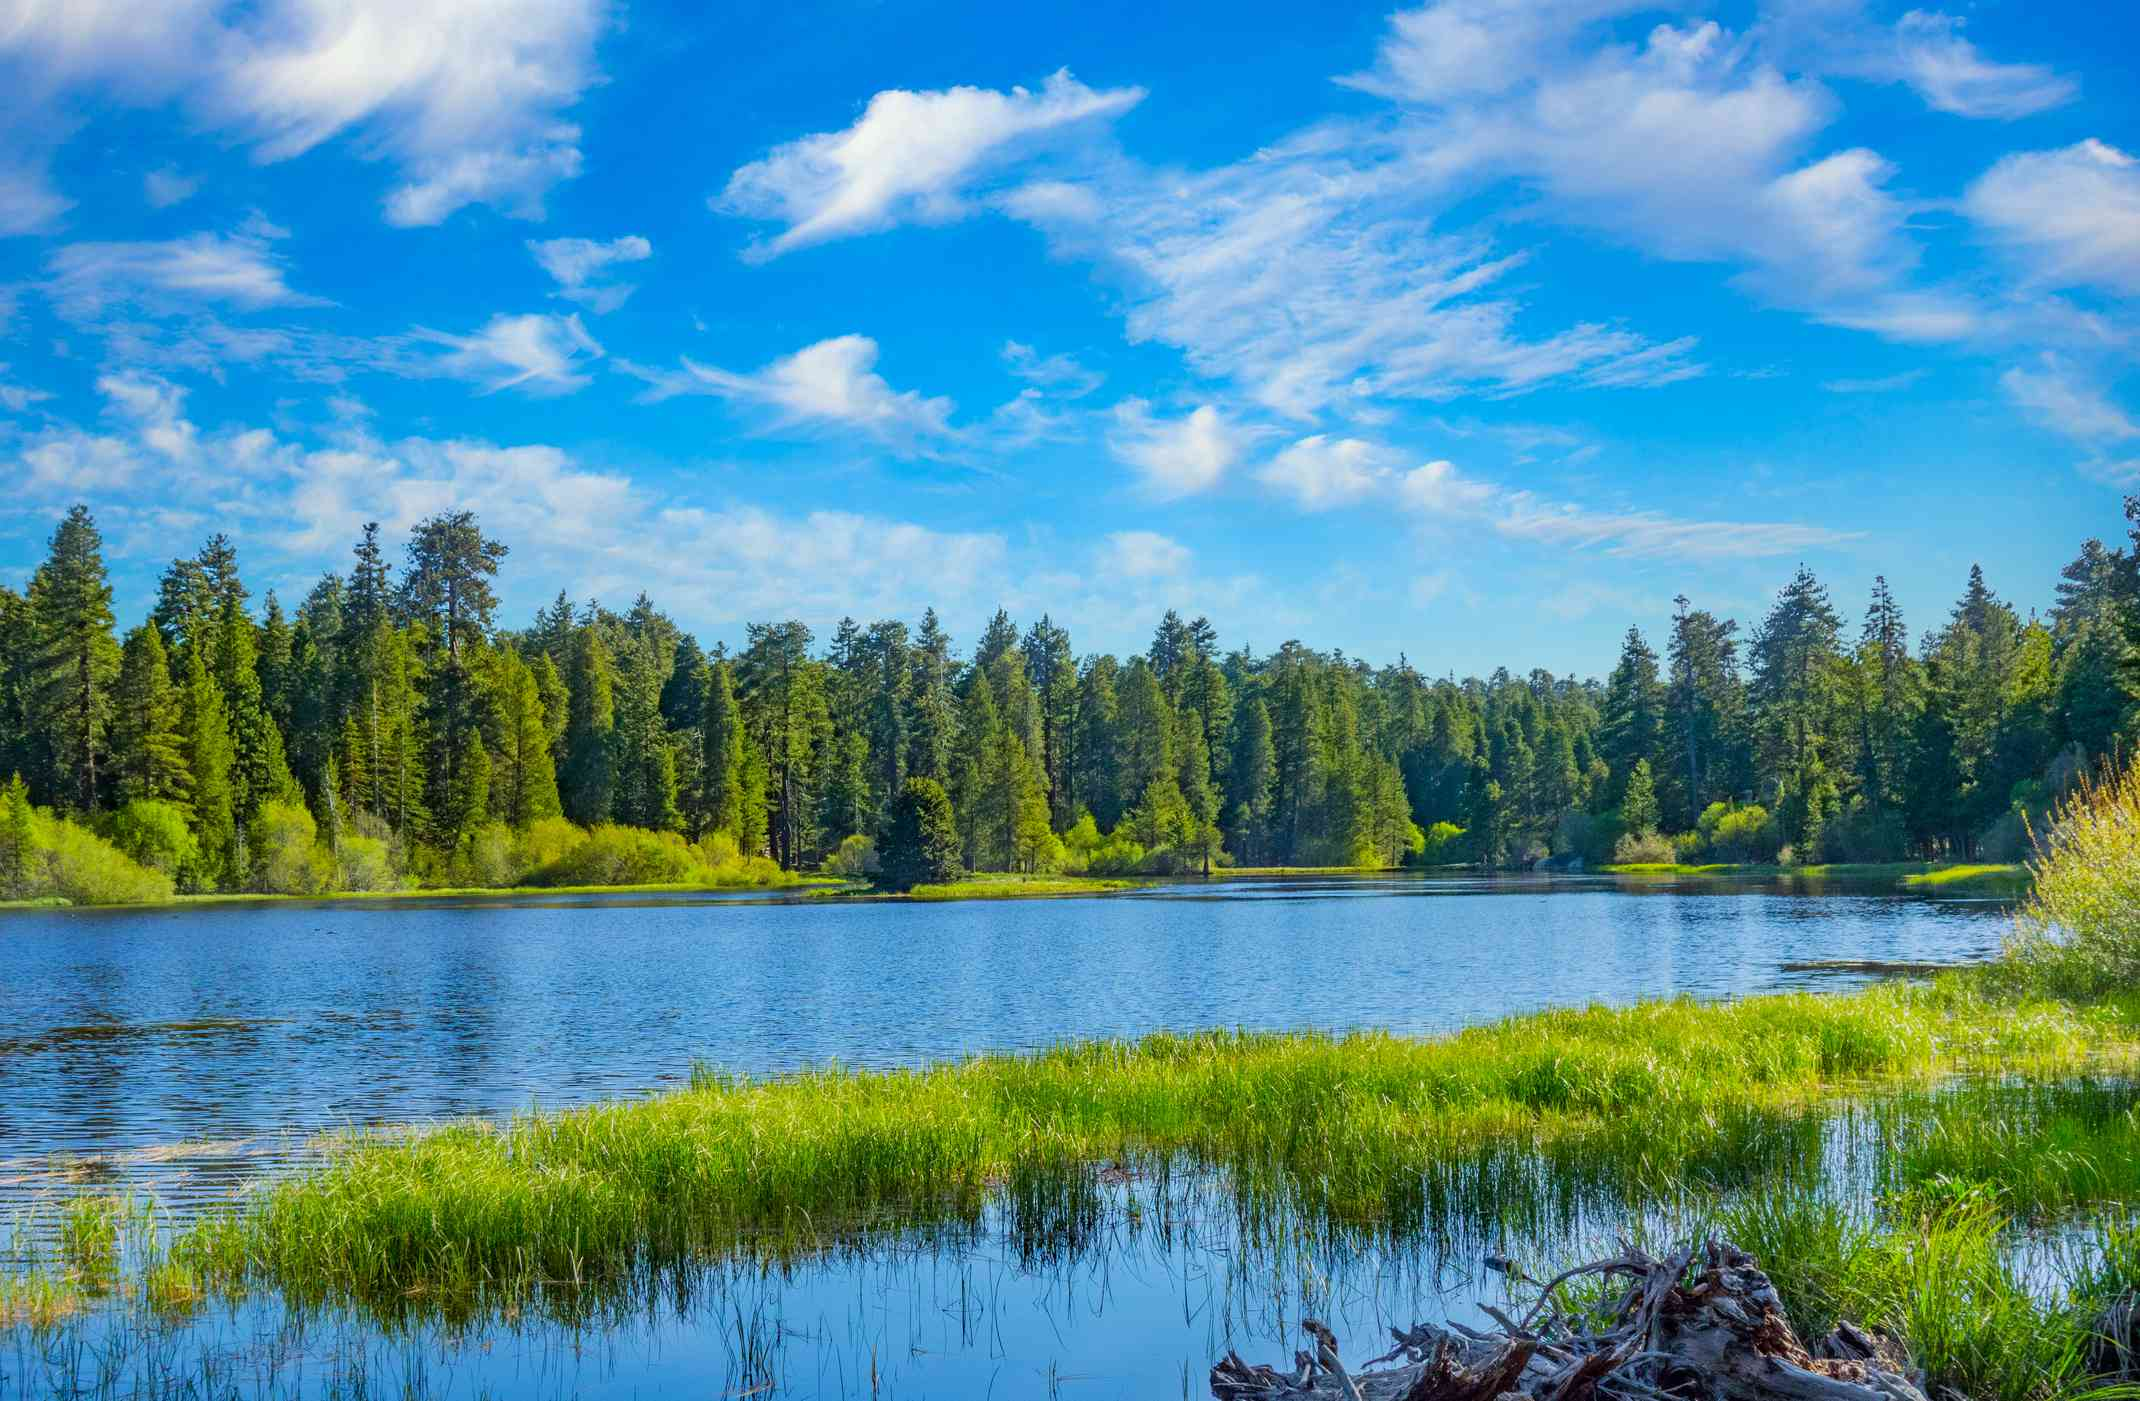 Bluff Lake surrounded by evergreen trees with blue sky overhead